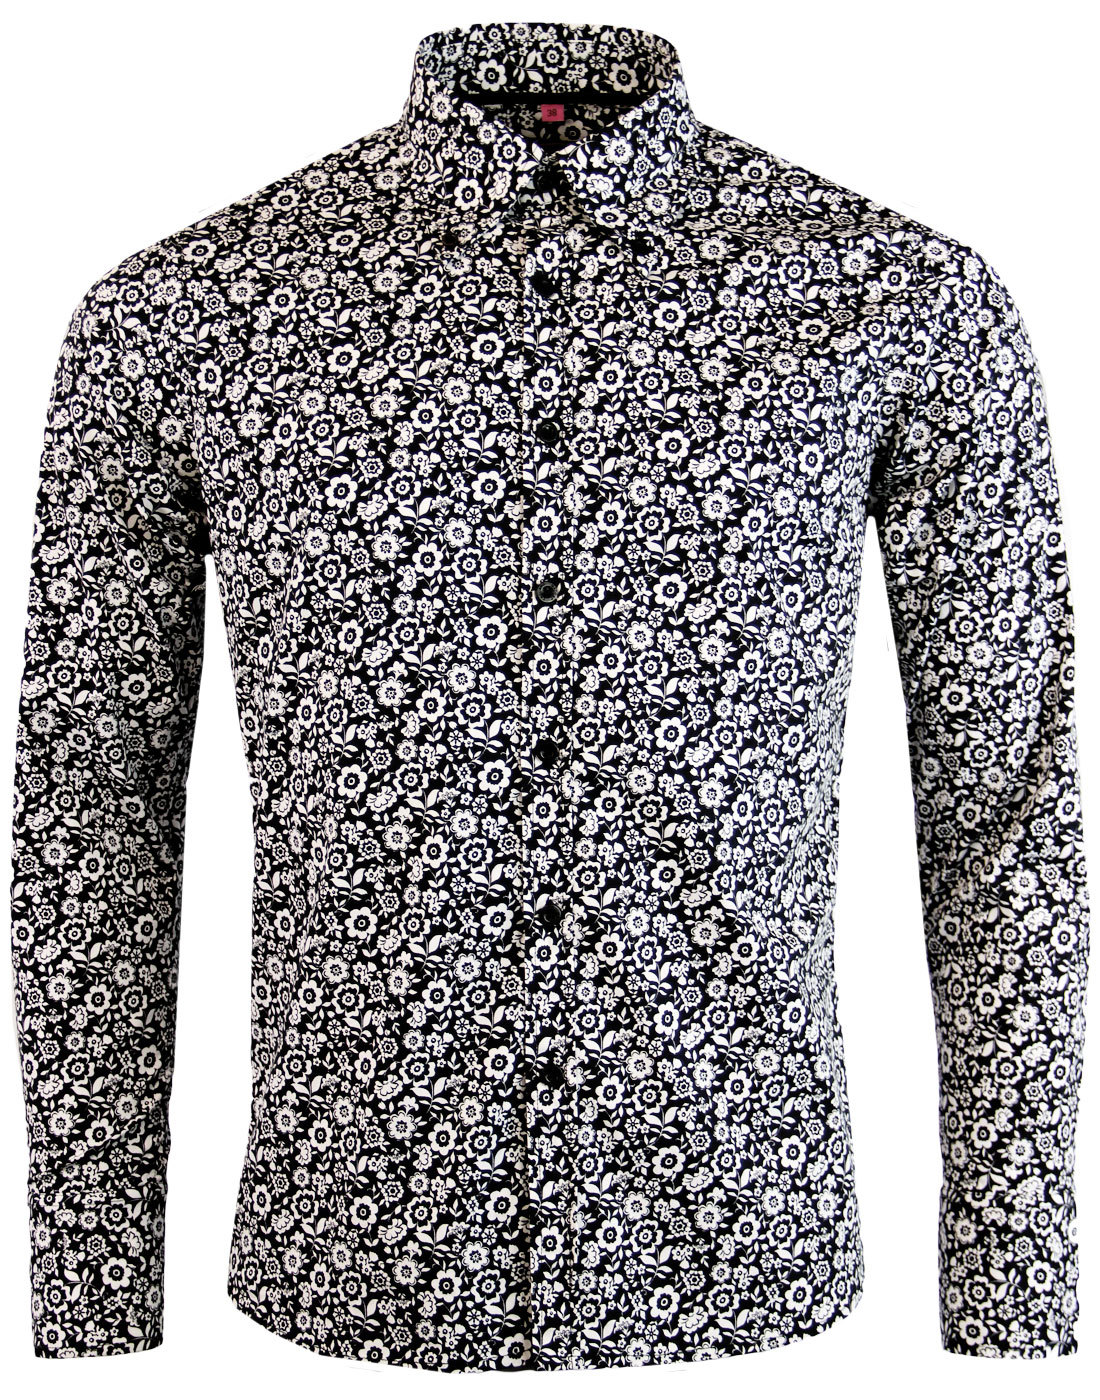 Trip Floral Men 39 S 1960s Mod Monotone Floral Retro Button